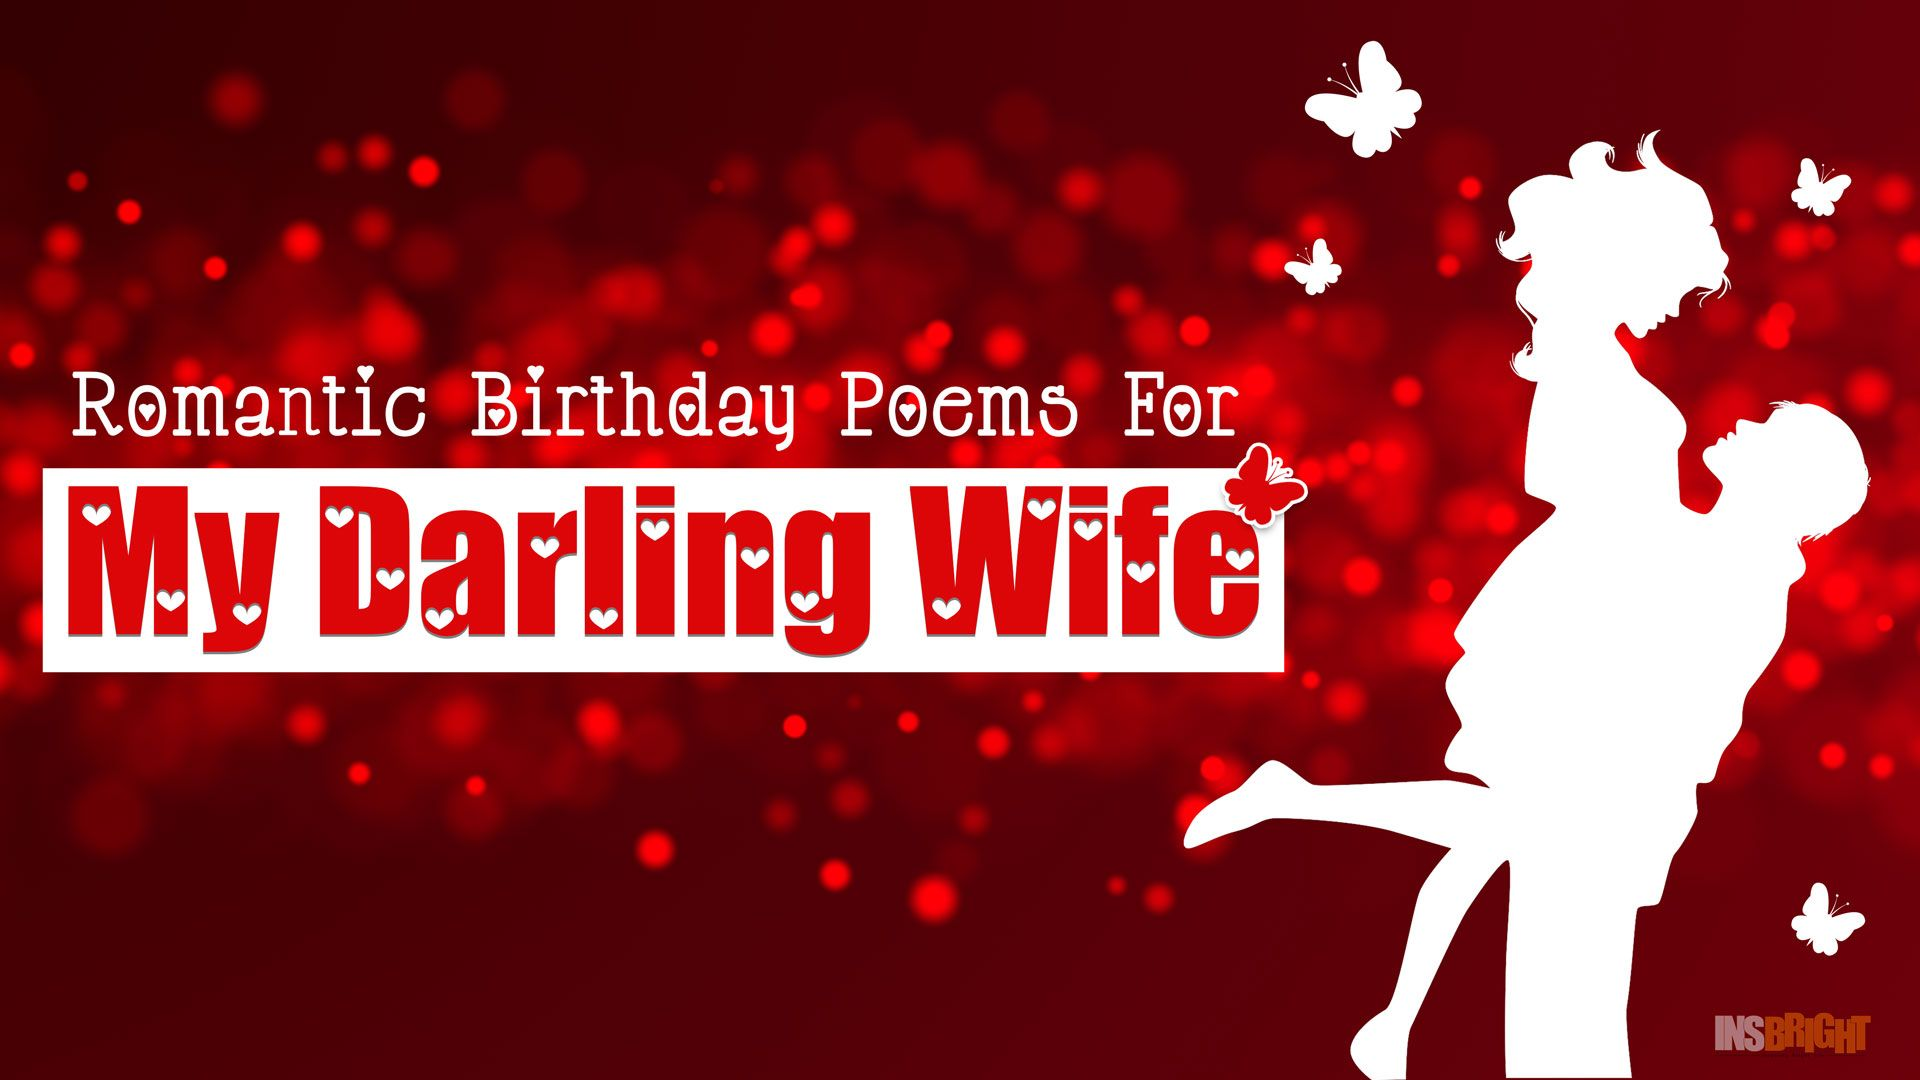 Romantic Happy Birthday Poems For Wife With Love From ...